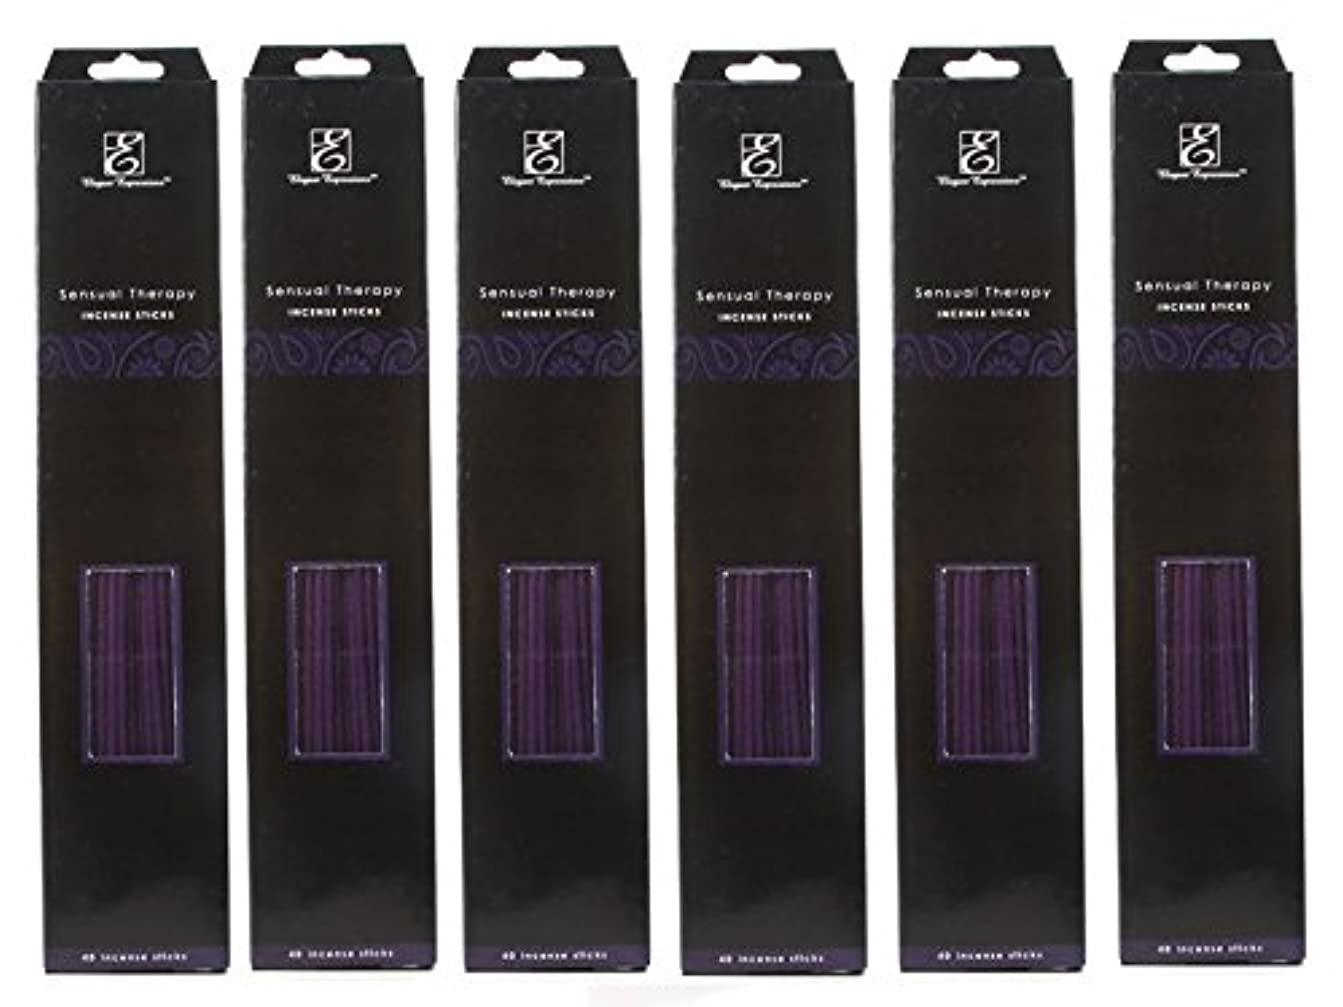 Hosley 's Highly Fragranced官能的療法Incense Sticks 240パック、Infused with Essential Oils。Ideal For結婚式、イベント、アロマセラピー、Spa...